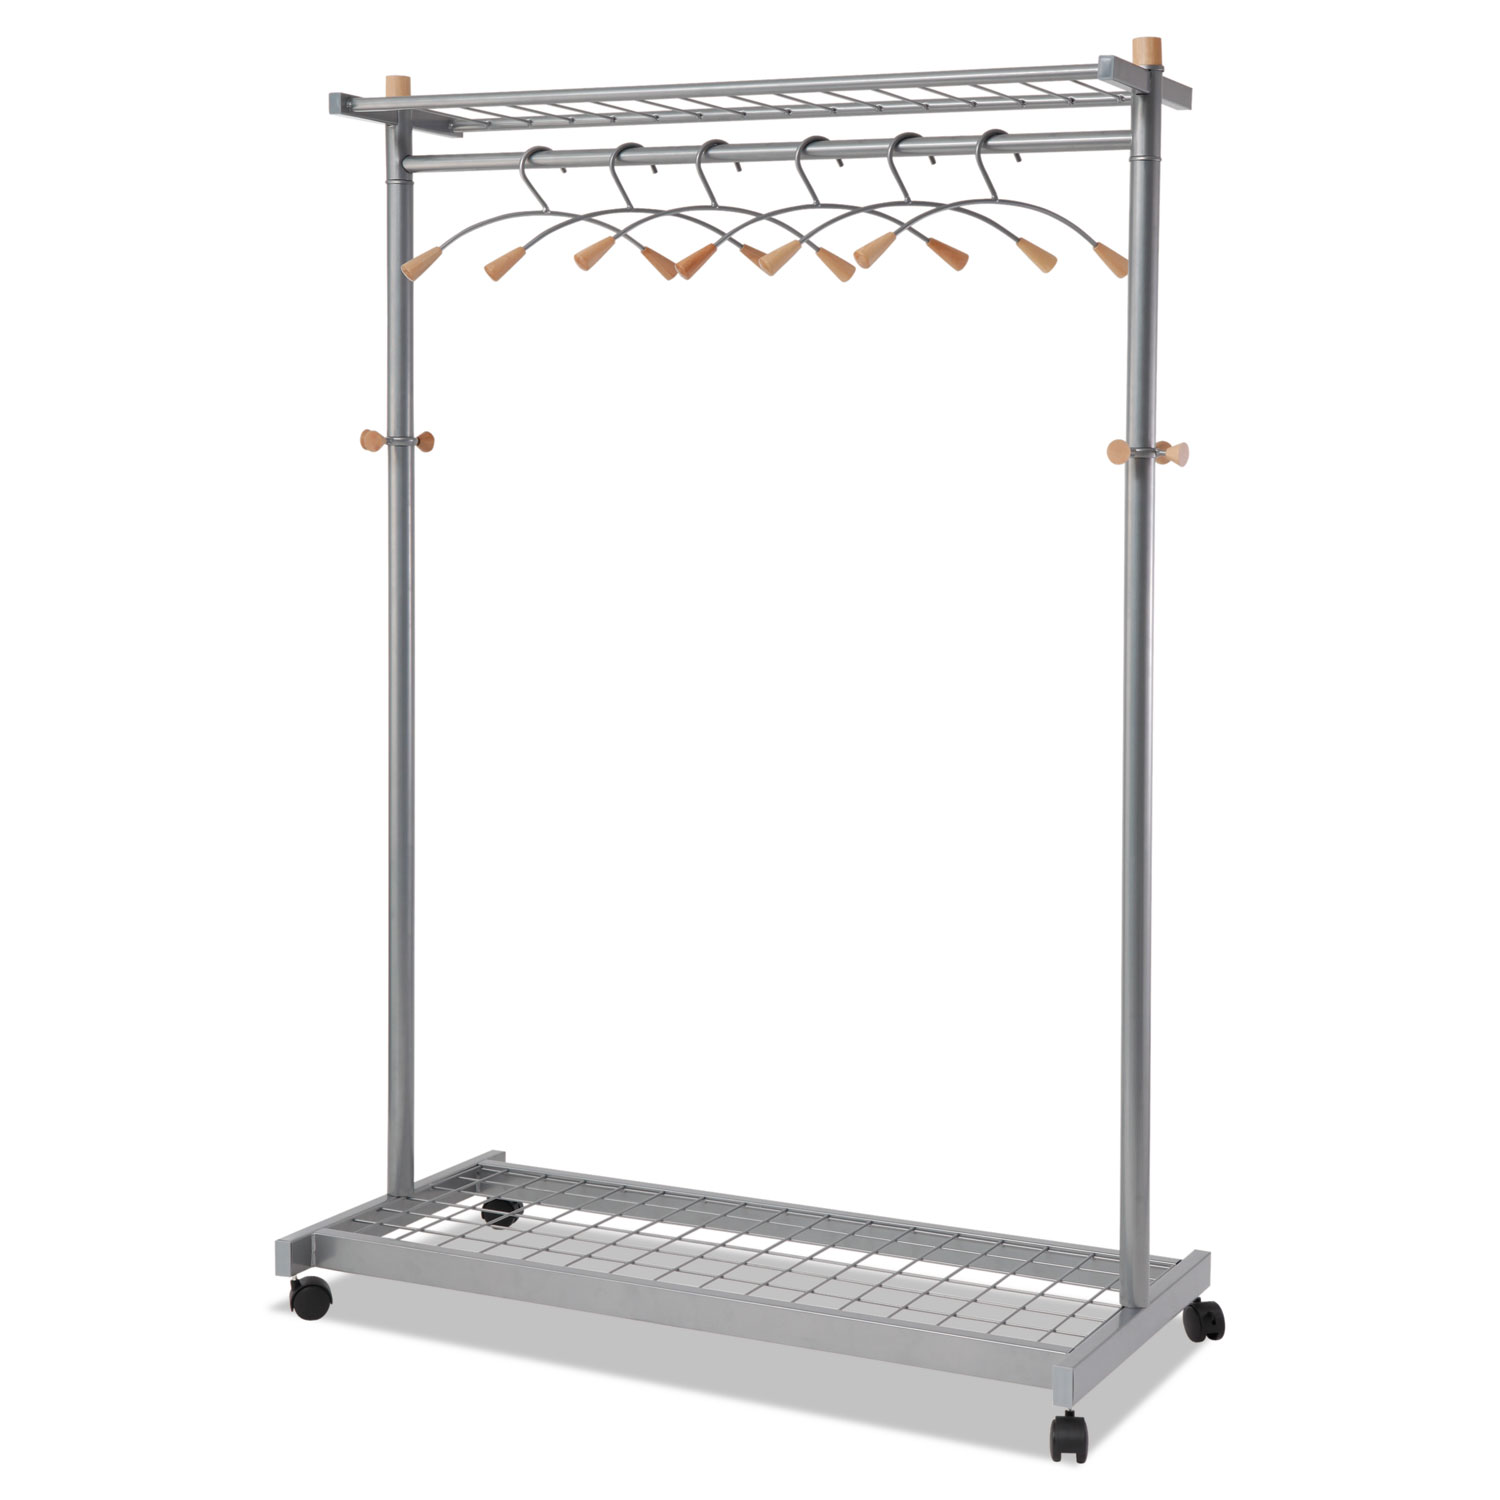 Garment Racks, Two-Sided, 2-Shelf Coat Rack, 6 Hanger/6 Hook, 44.8w x 21.67d x 70.8h, Silver Steel/Wood